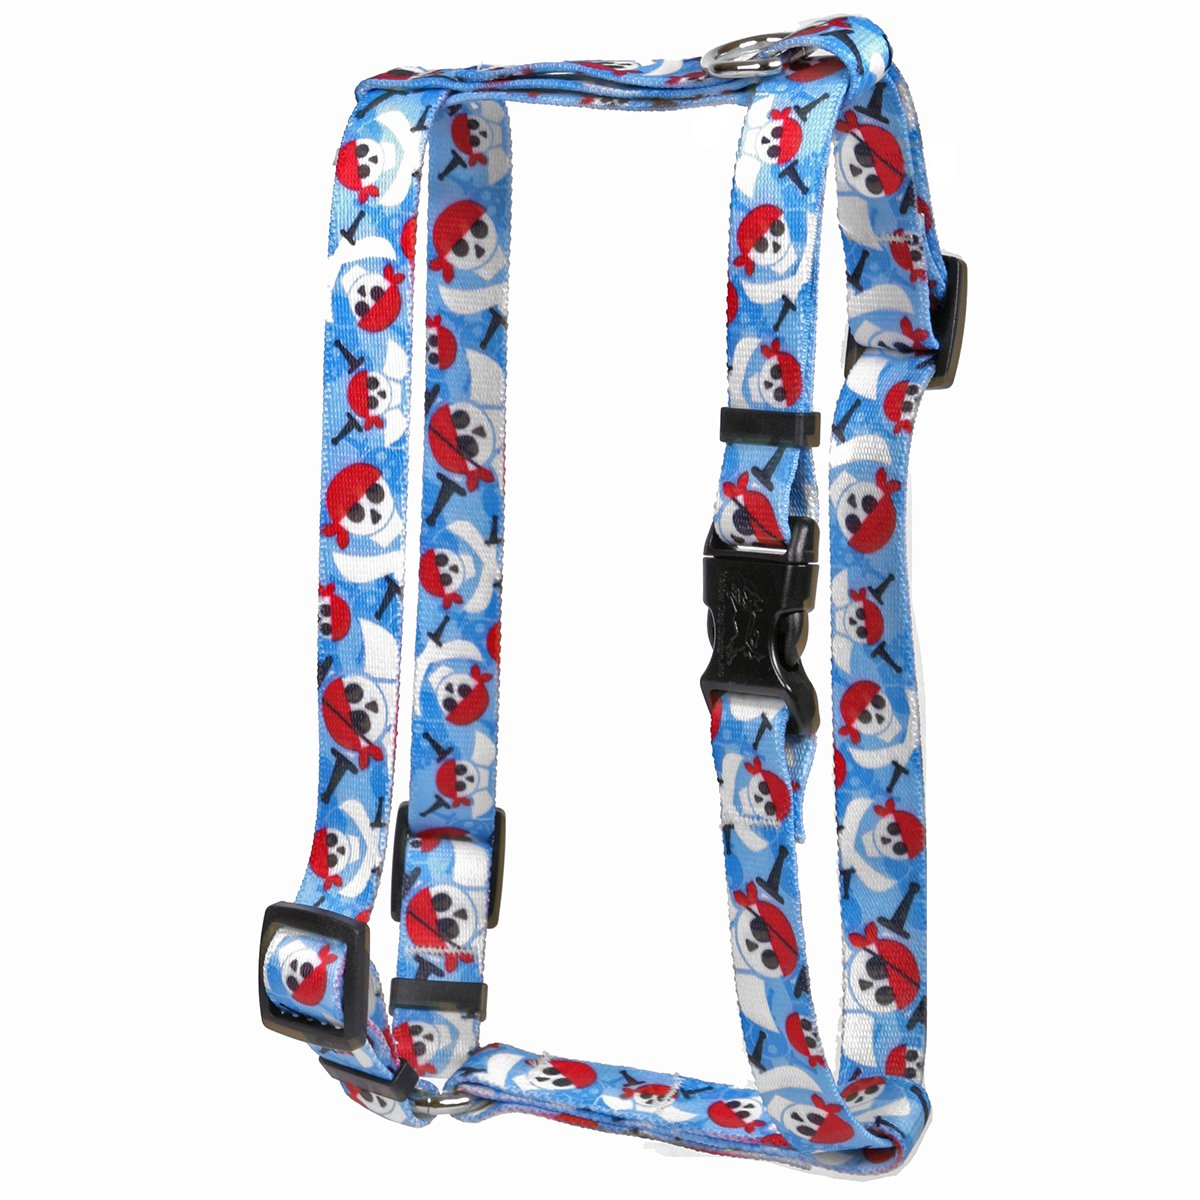 Yellow Dog Design Pirate Skulls Roman Style H Dog Harness, Large-1'' Wide and fits Chest of 20 to 28''